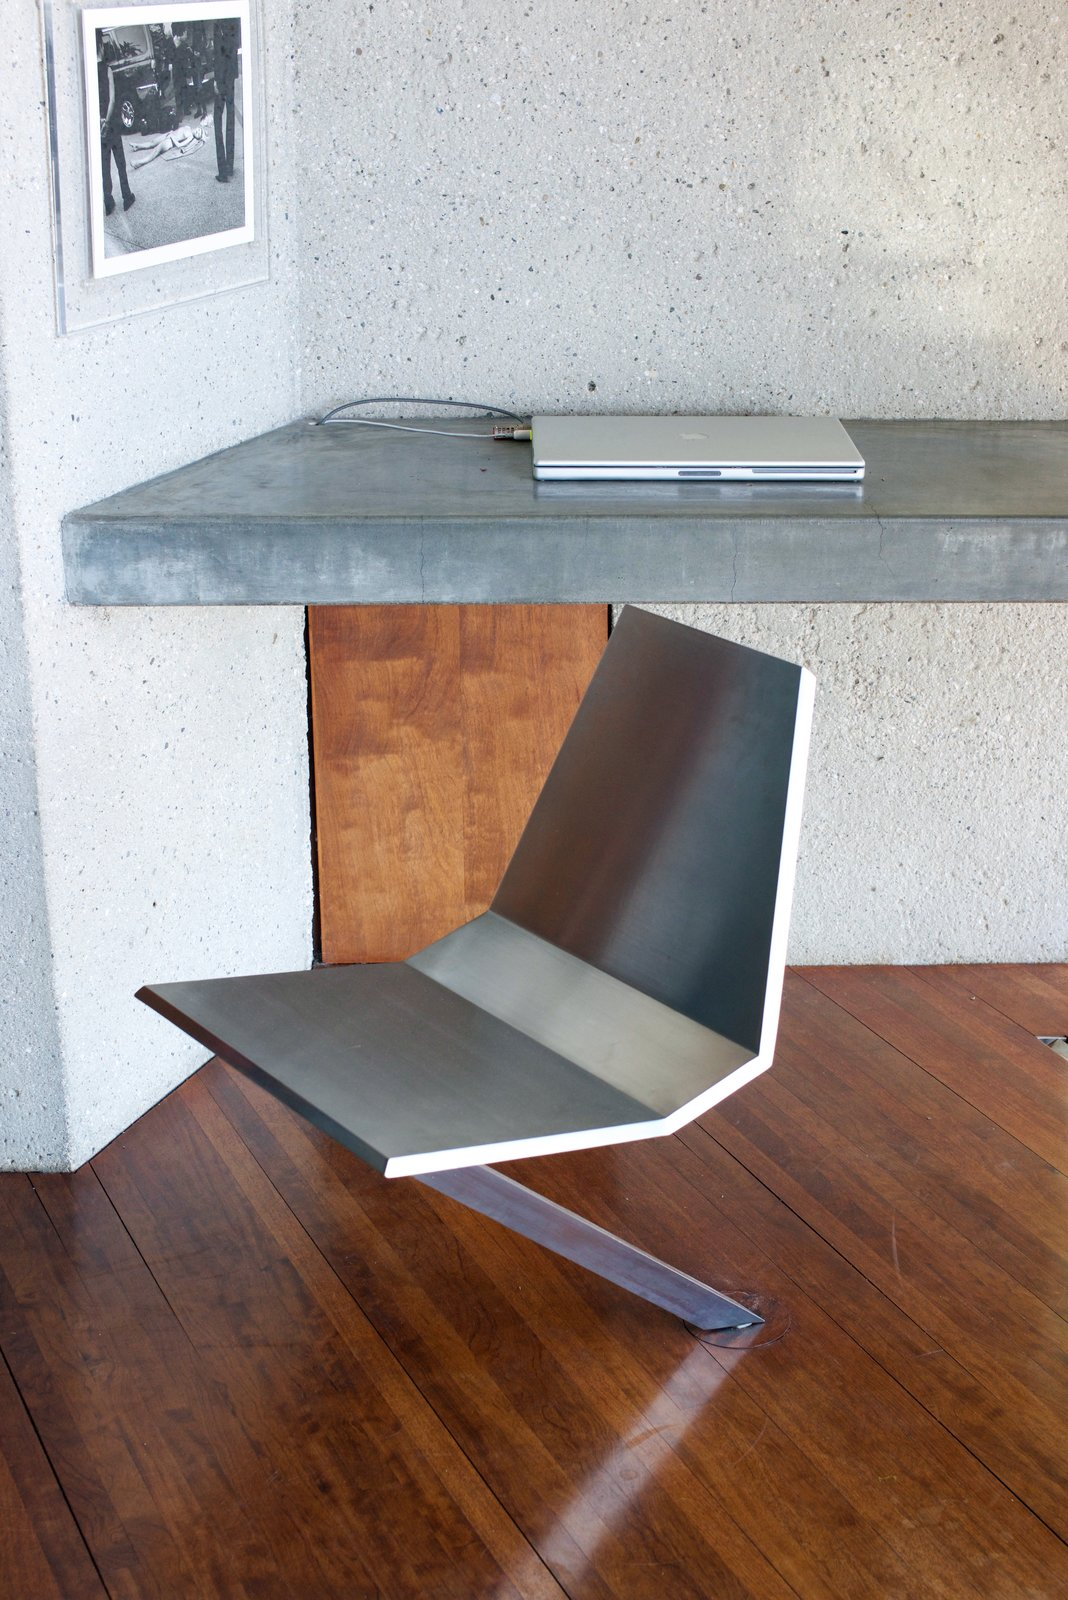 The stainless-steel swivel chair was made custom and rotates directly from the floor. It was designed by Lautner's protege, Duncan Nicholson—who helped oversee the renovations of the house.